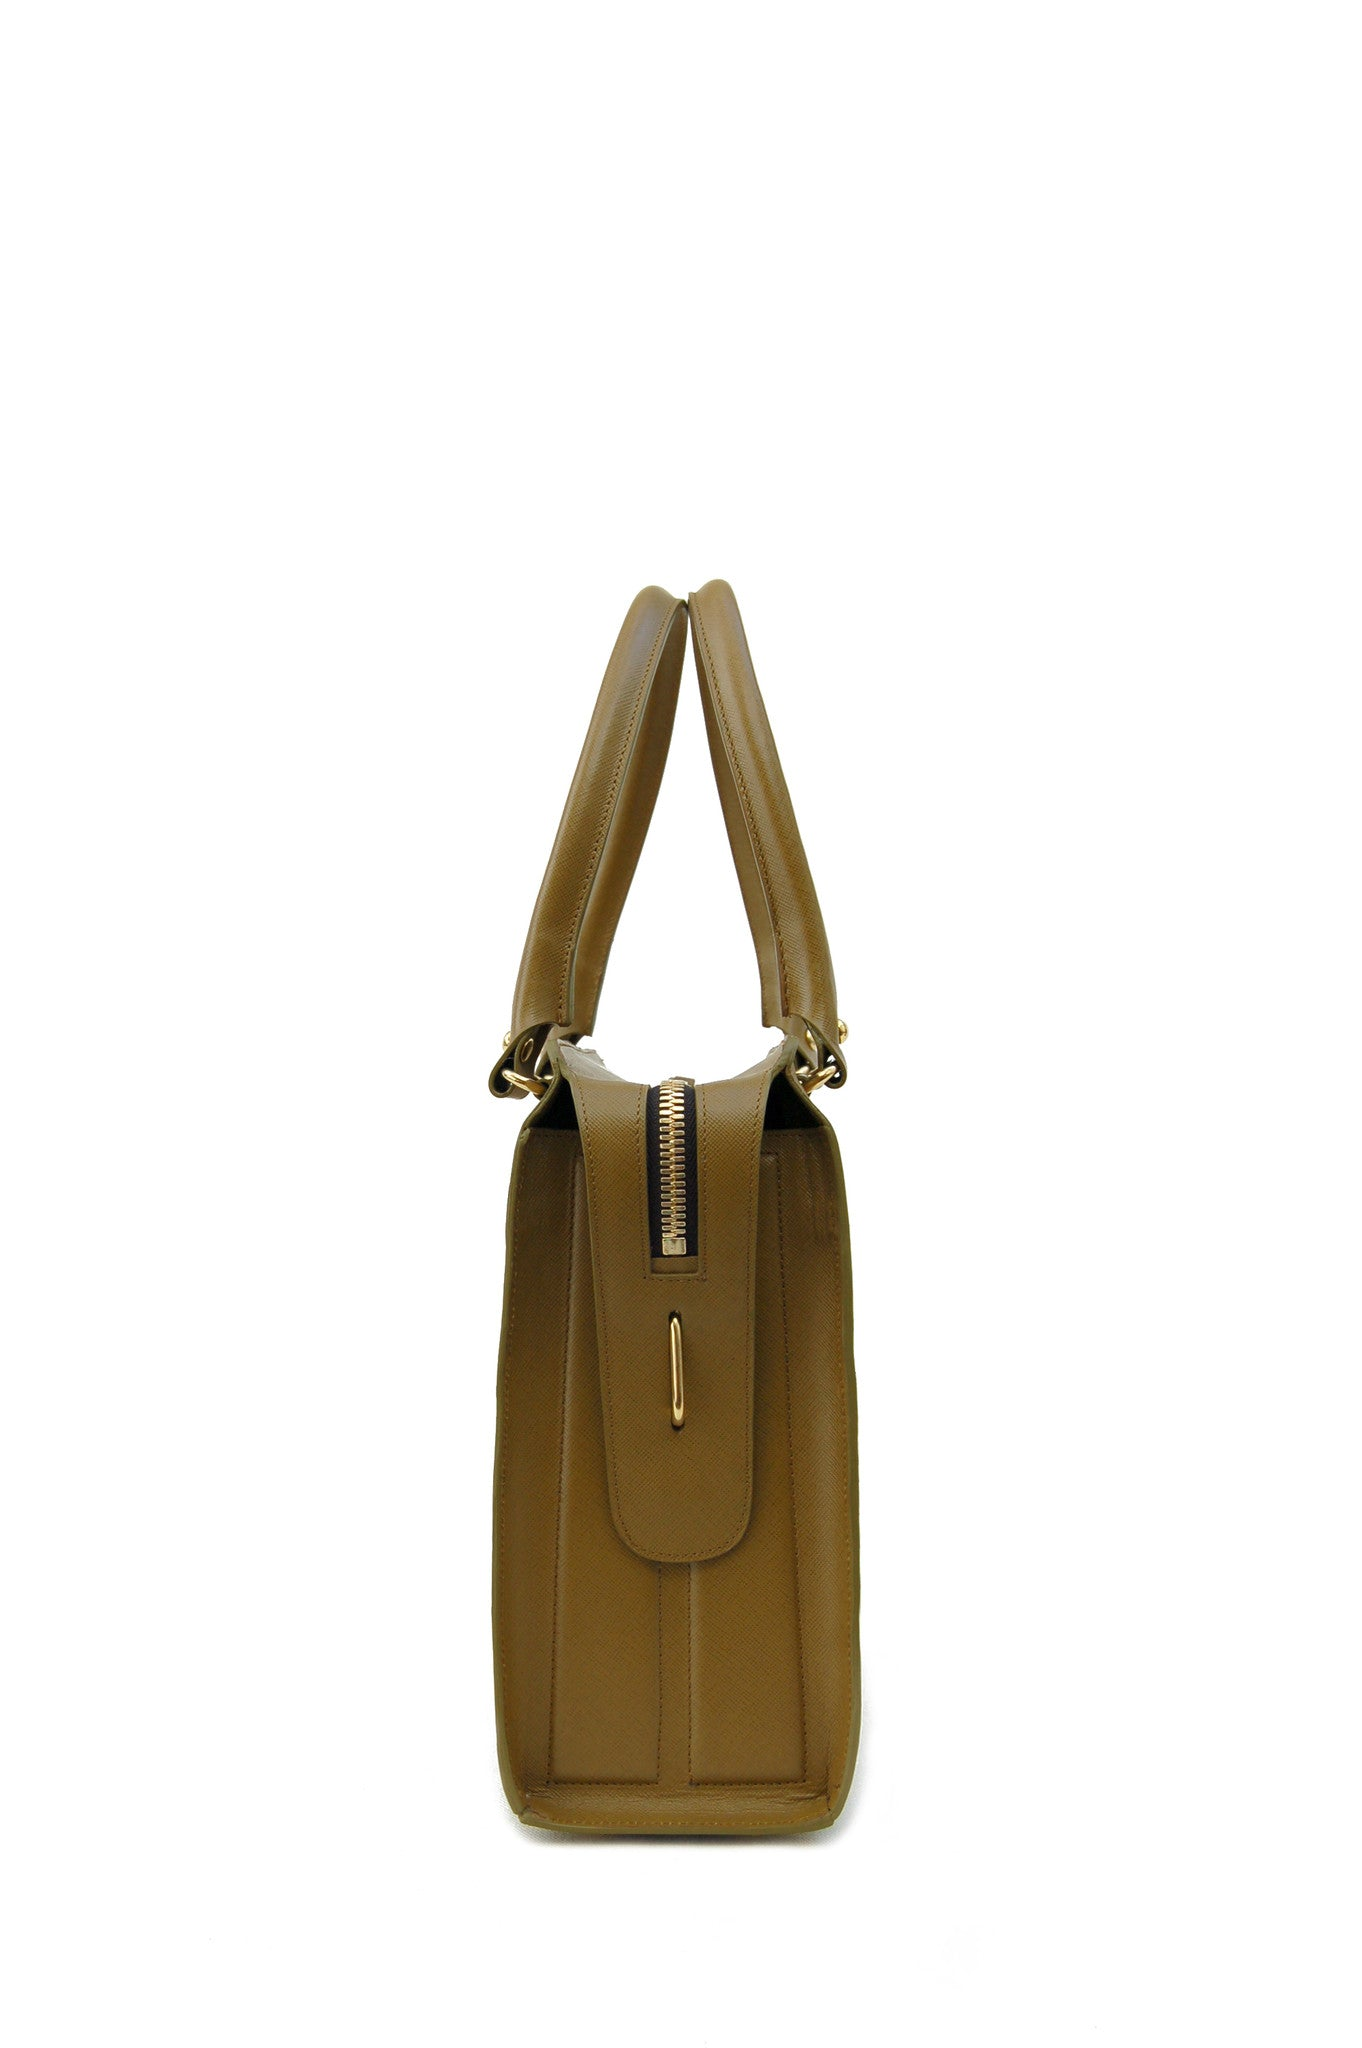 Wendee Ou: Middleton structured bag olive | Bags,Bags > Totes -  Hiphunters Shop